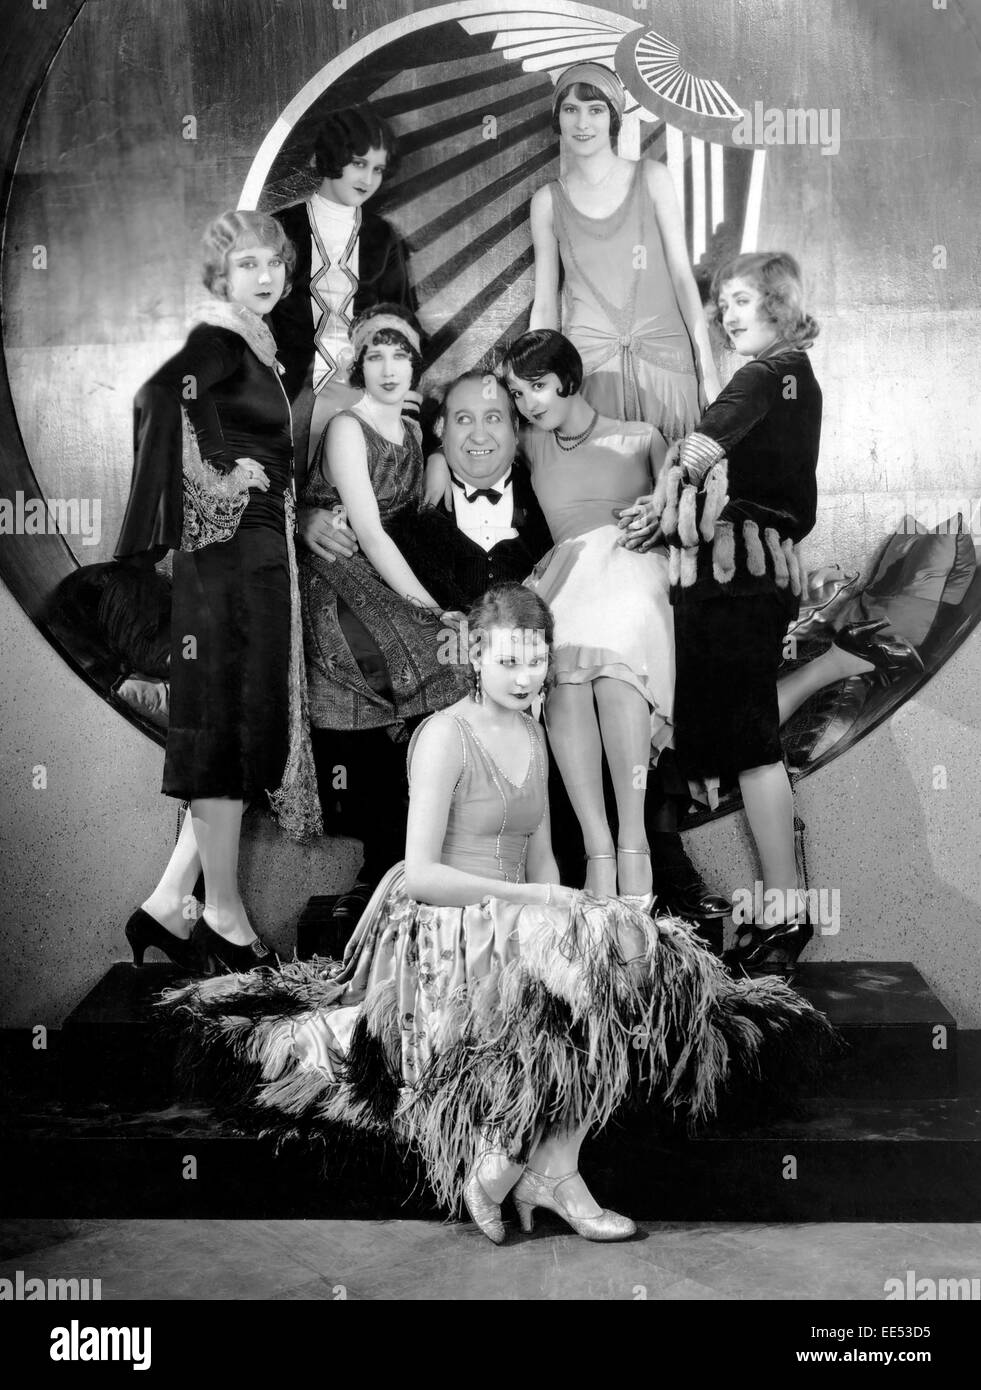 """Mack Swain, surrounded by Chorus Girls, on-set of the Silent Film, """"Becky"""", 1927 Stock Photo"""